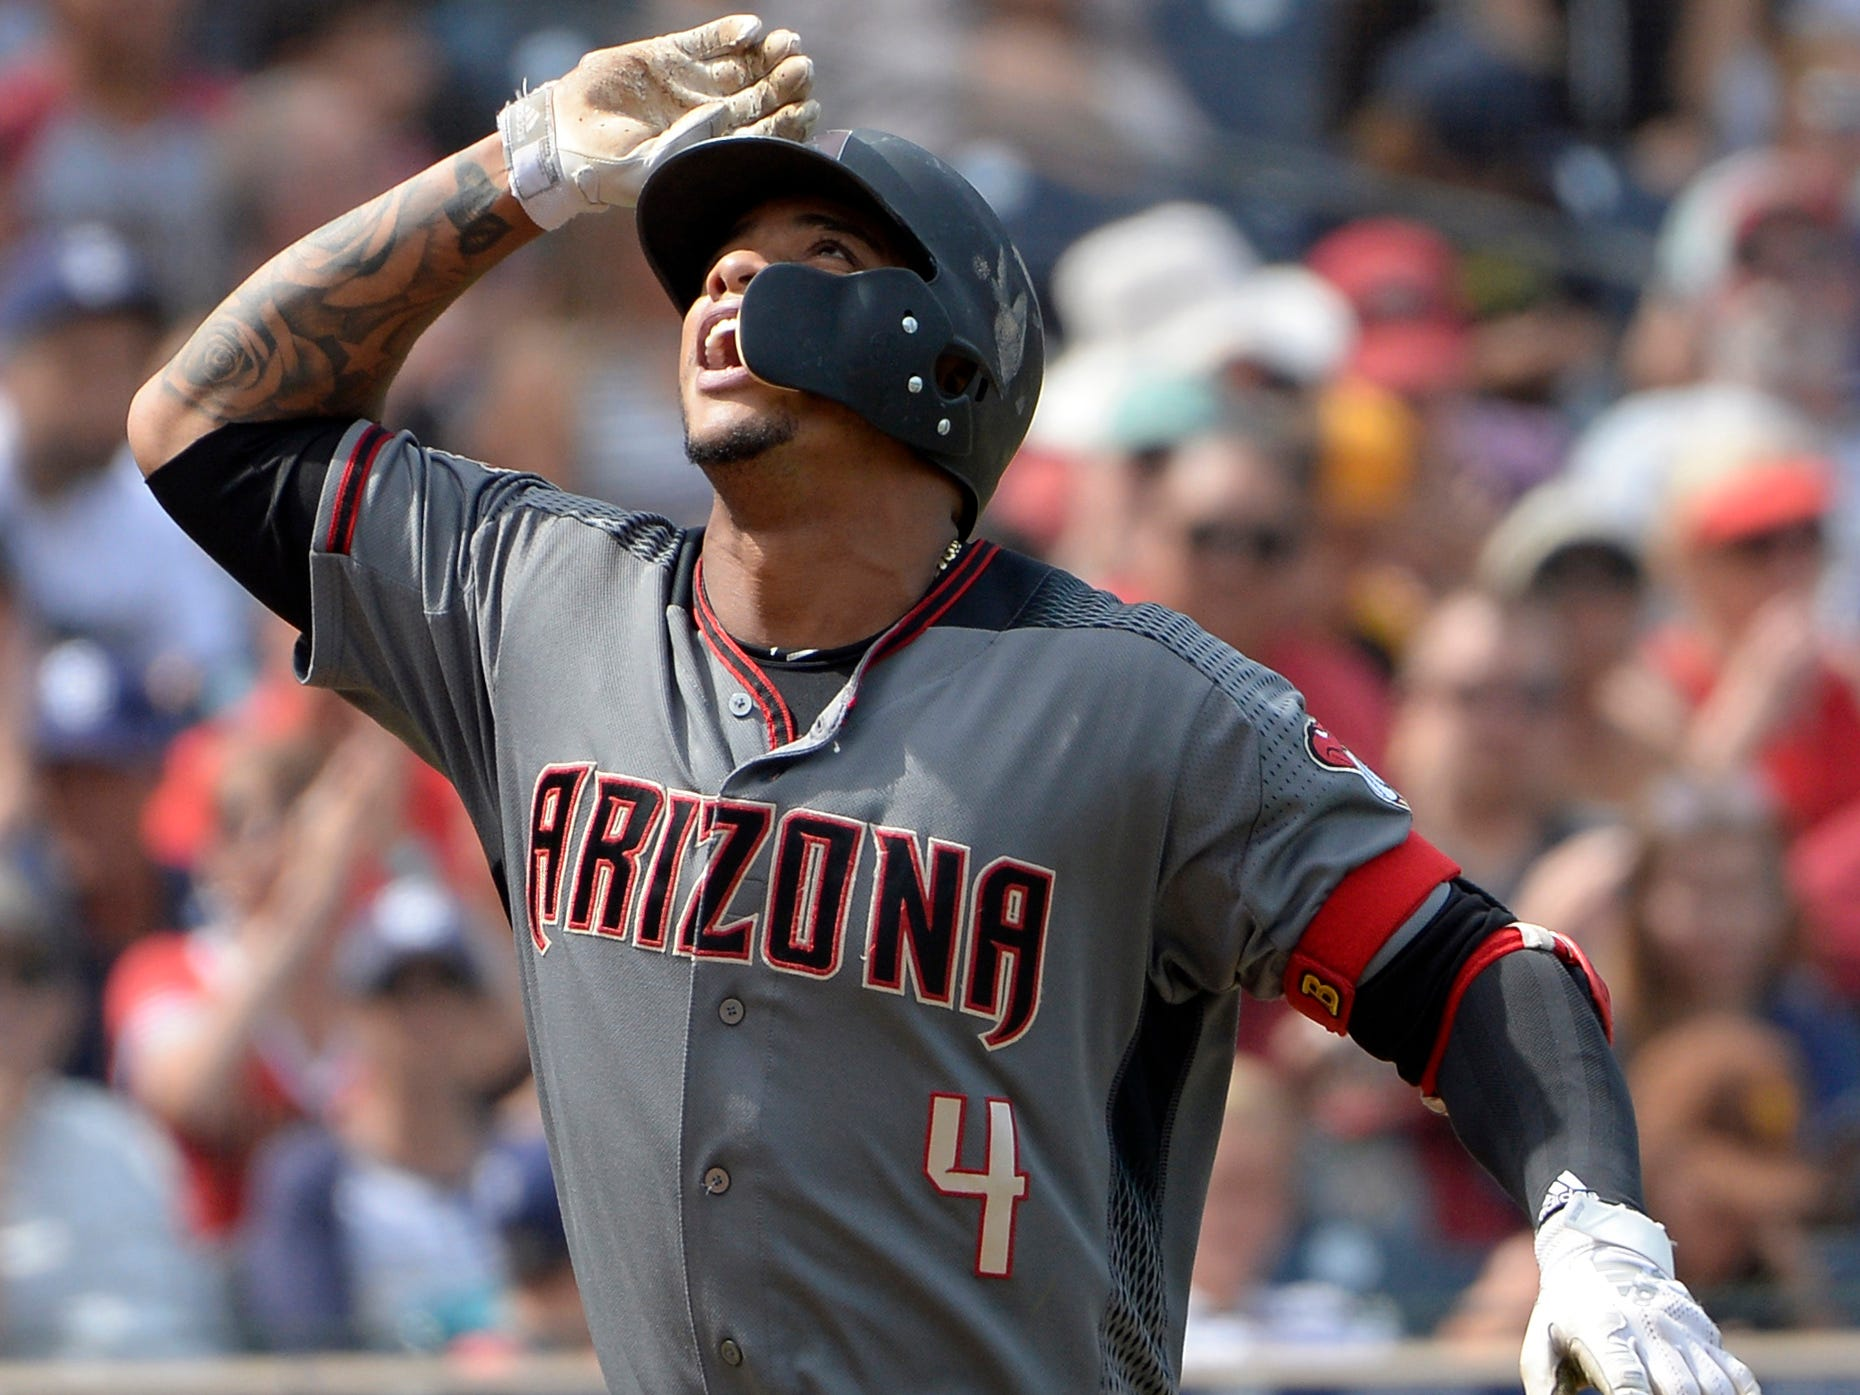 Sep 30, 2018; San Diego, CA, USA; Arizona Diamondbacks second baseman Ketel Marte (4) gestures after hitting a solo home run during the fourth inning against the San Diego Padres at Petco Park. Mandatory Credit: Jake Roth-USA TODAY Sports